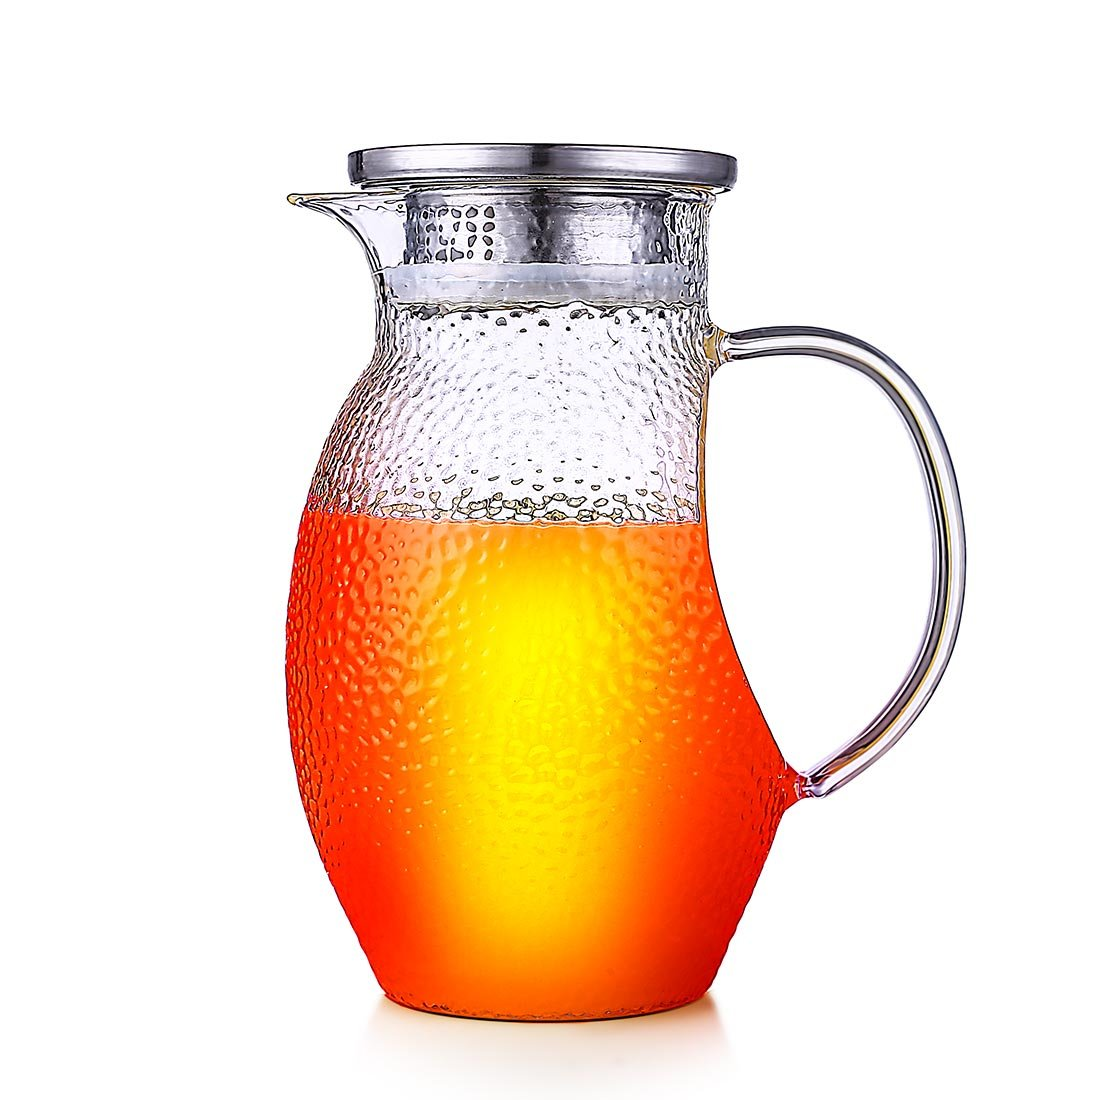 ONEISALL 44OZ Glass Pitcher with Lid,Borosilicate Glass Jug Carafe with Stainless Steel Infuser for Ice Tea, Juice, Cold Brew, Cold/Hot Water, ect. DeHuiTai Trading Co. Ltd.